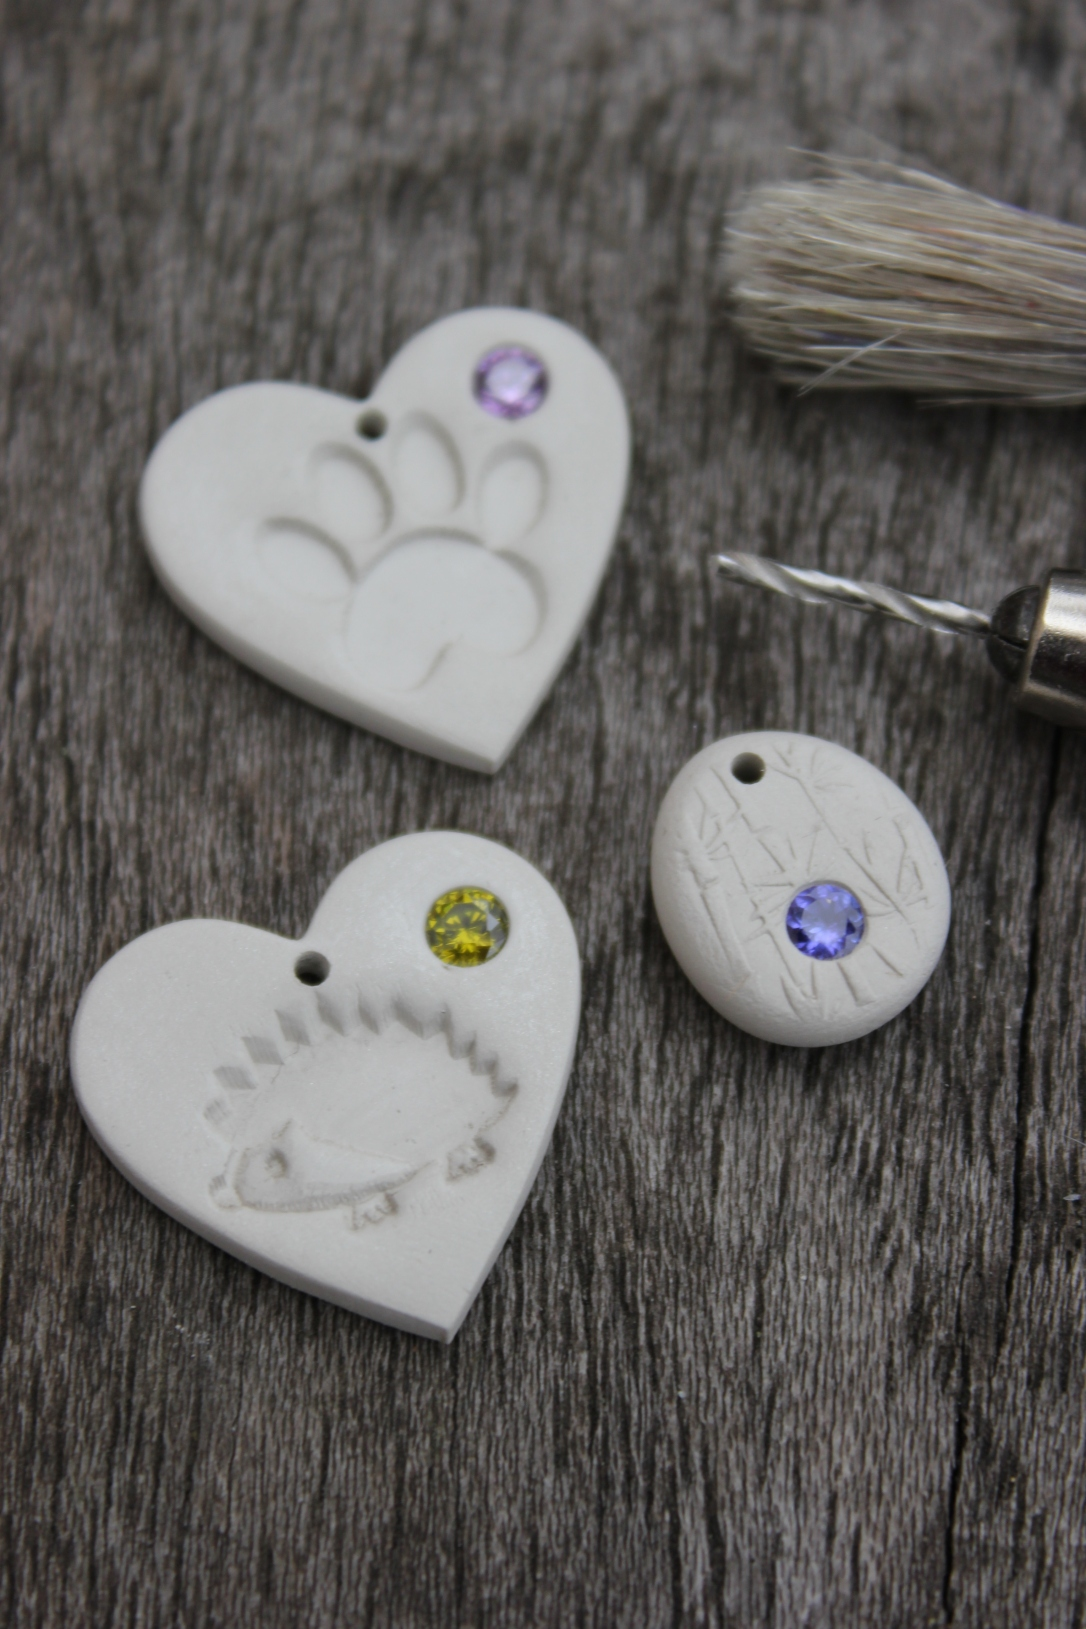 Making jewellery by Little Silver Hedgehog